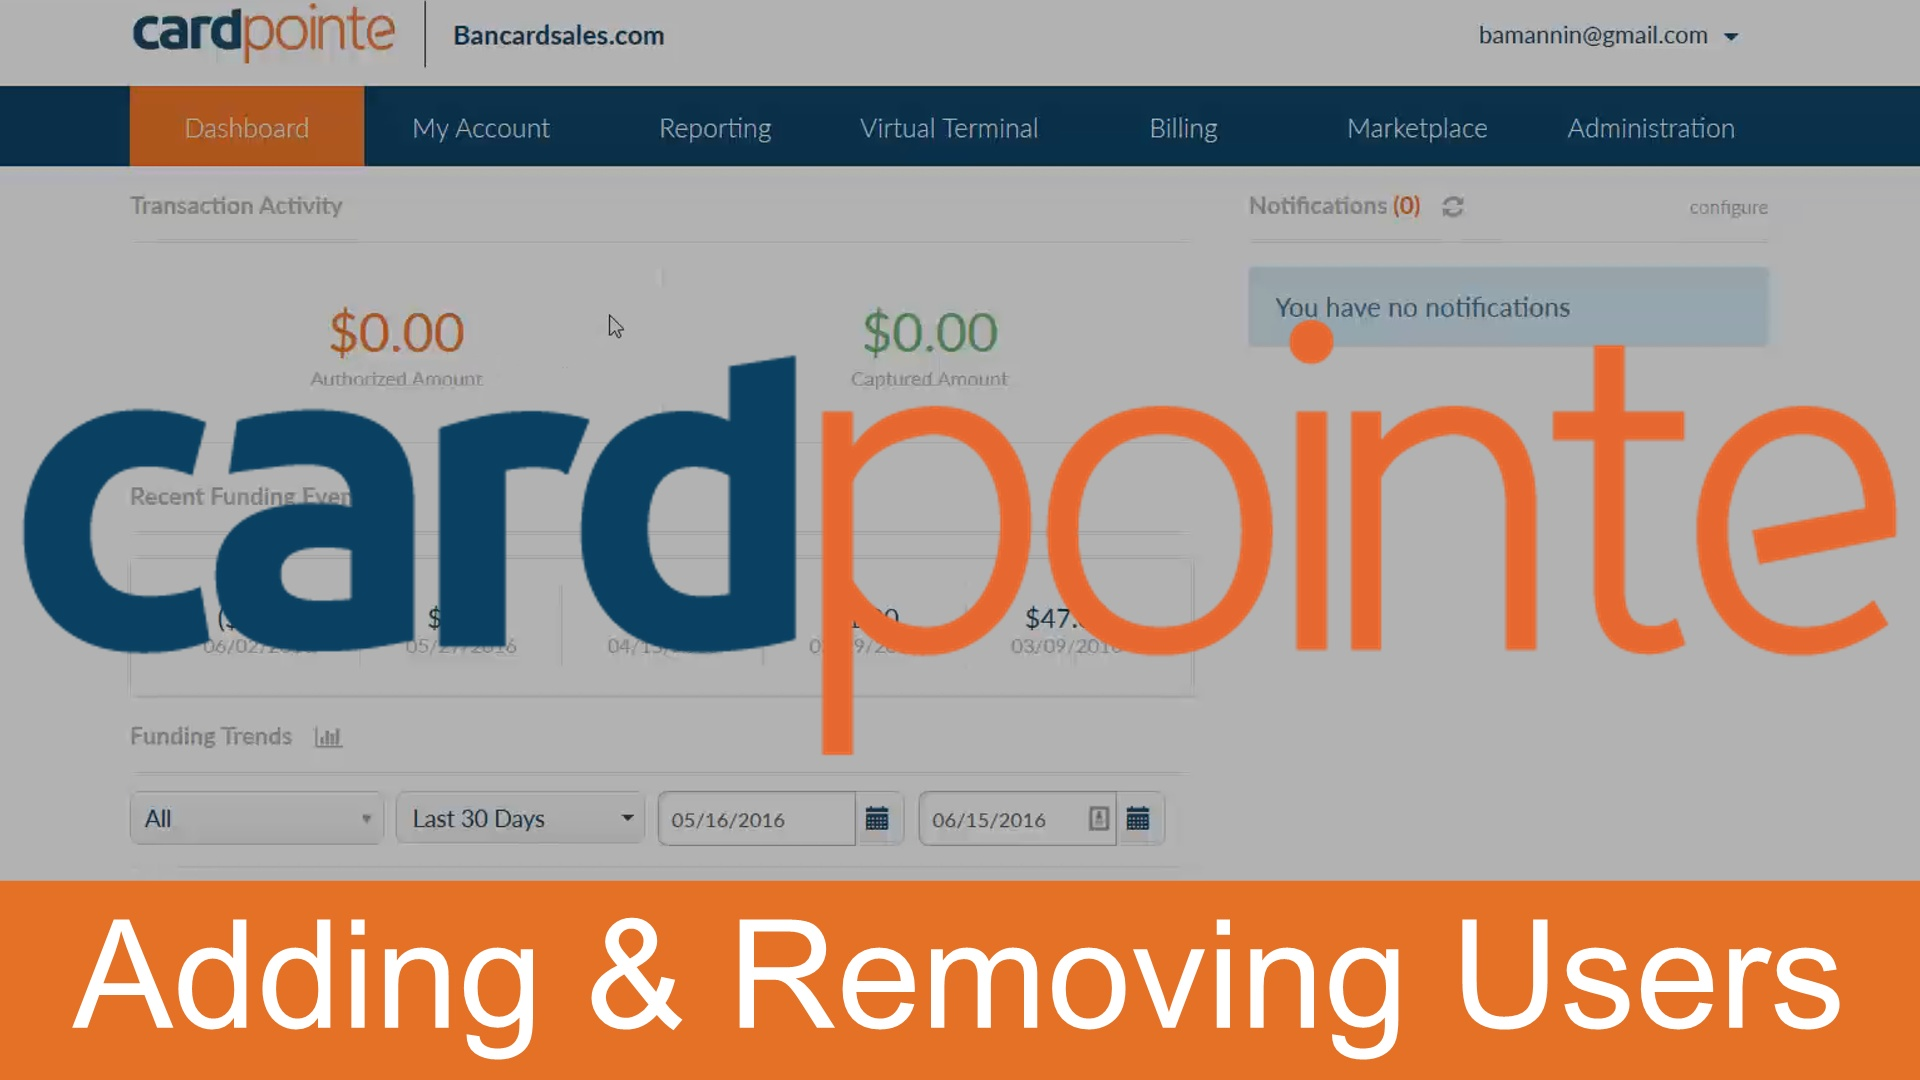 Adding and Removing Users – Customizing Cardpointe Online [Video]